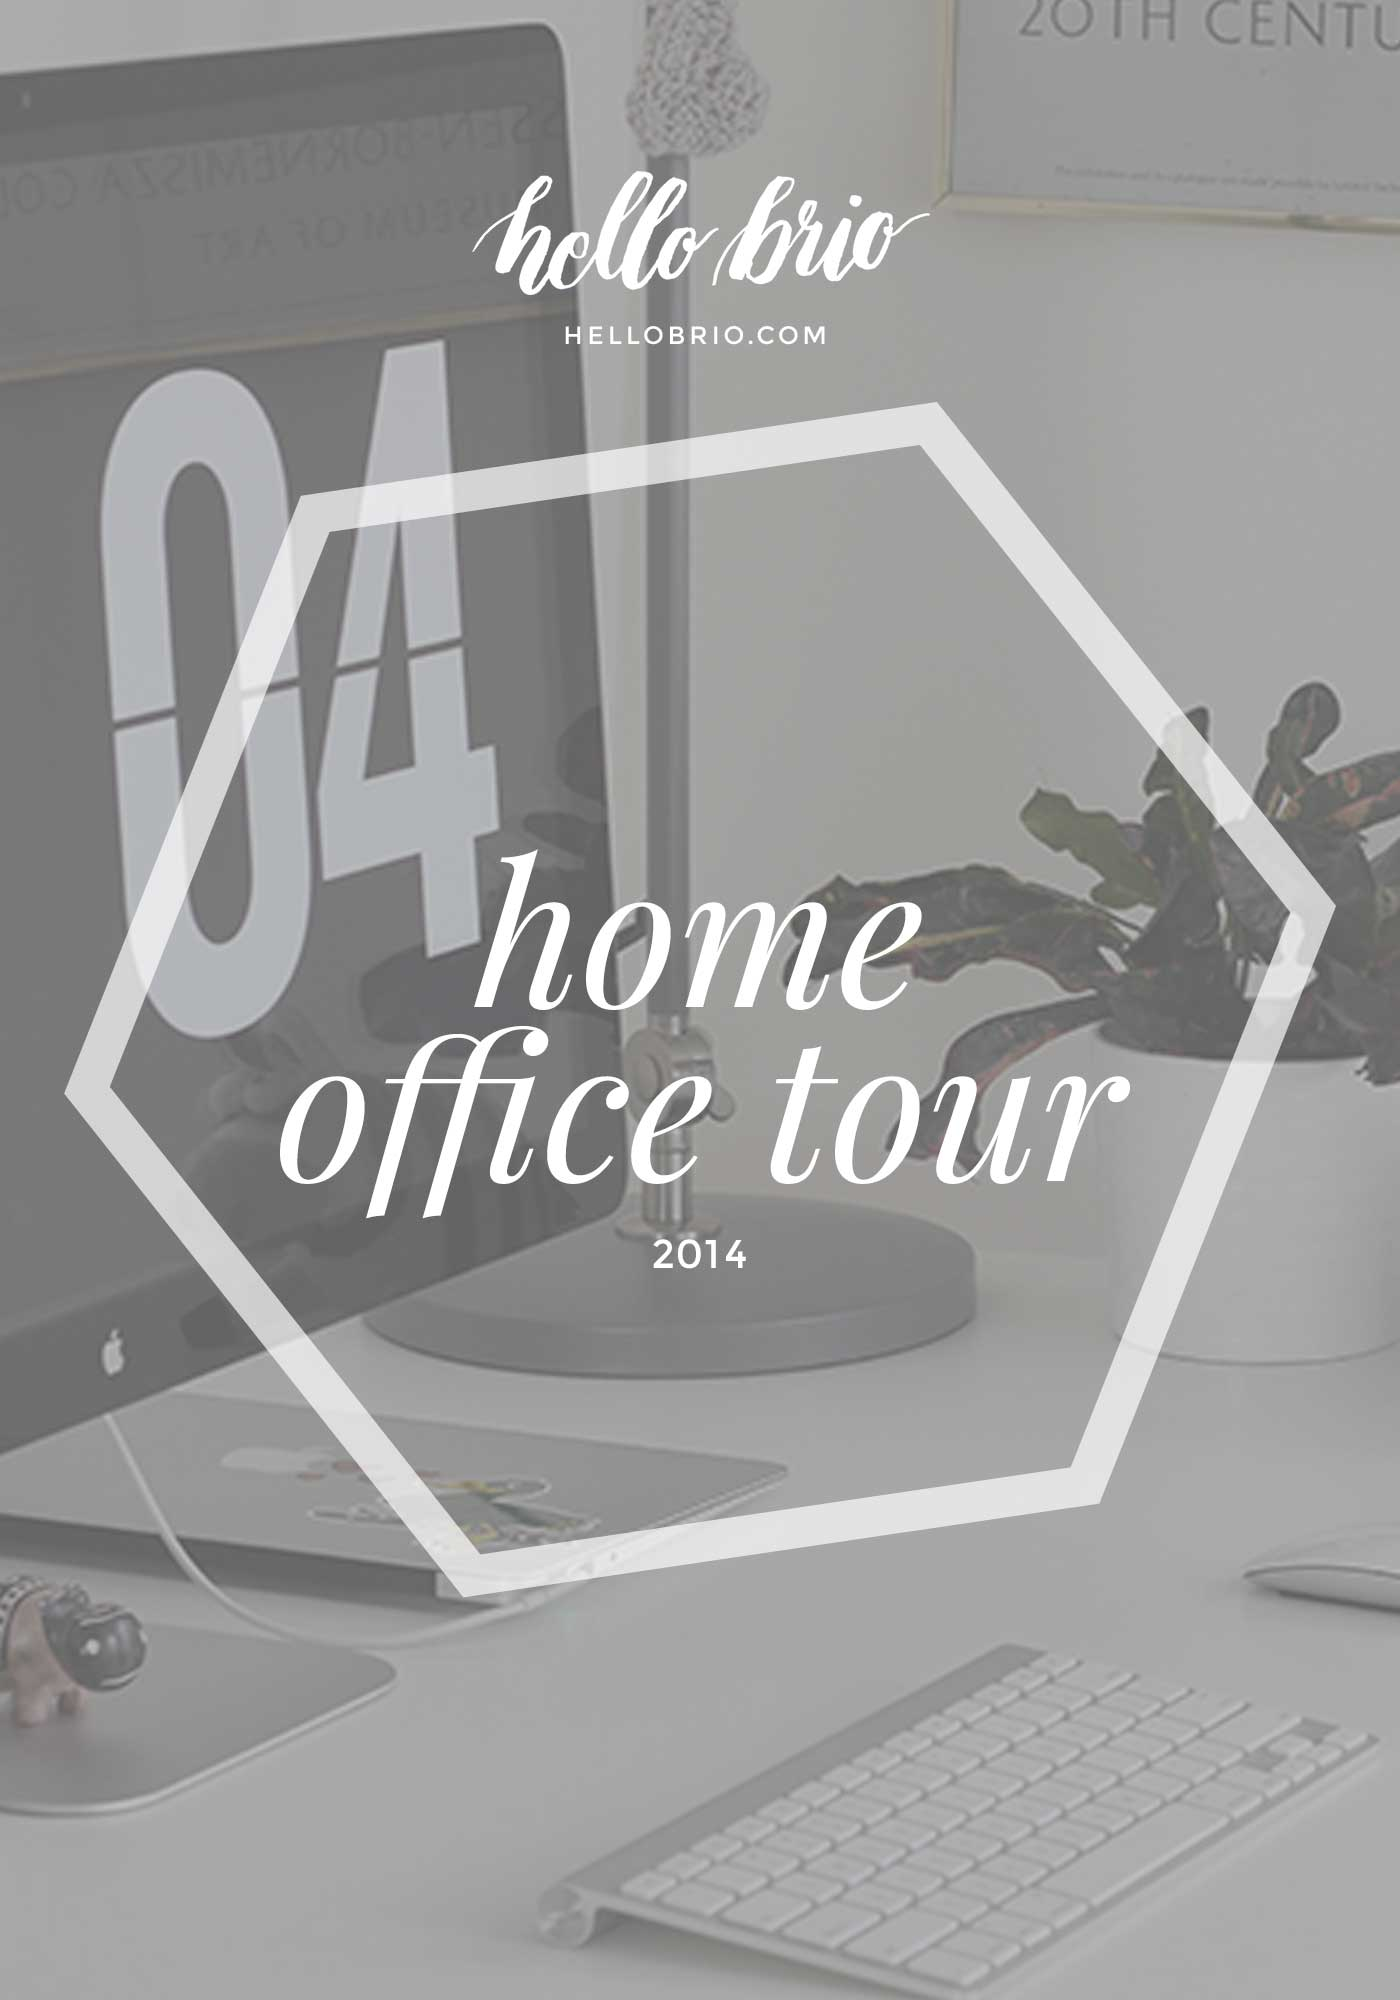 Home office tour 2014